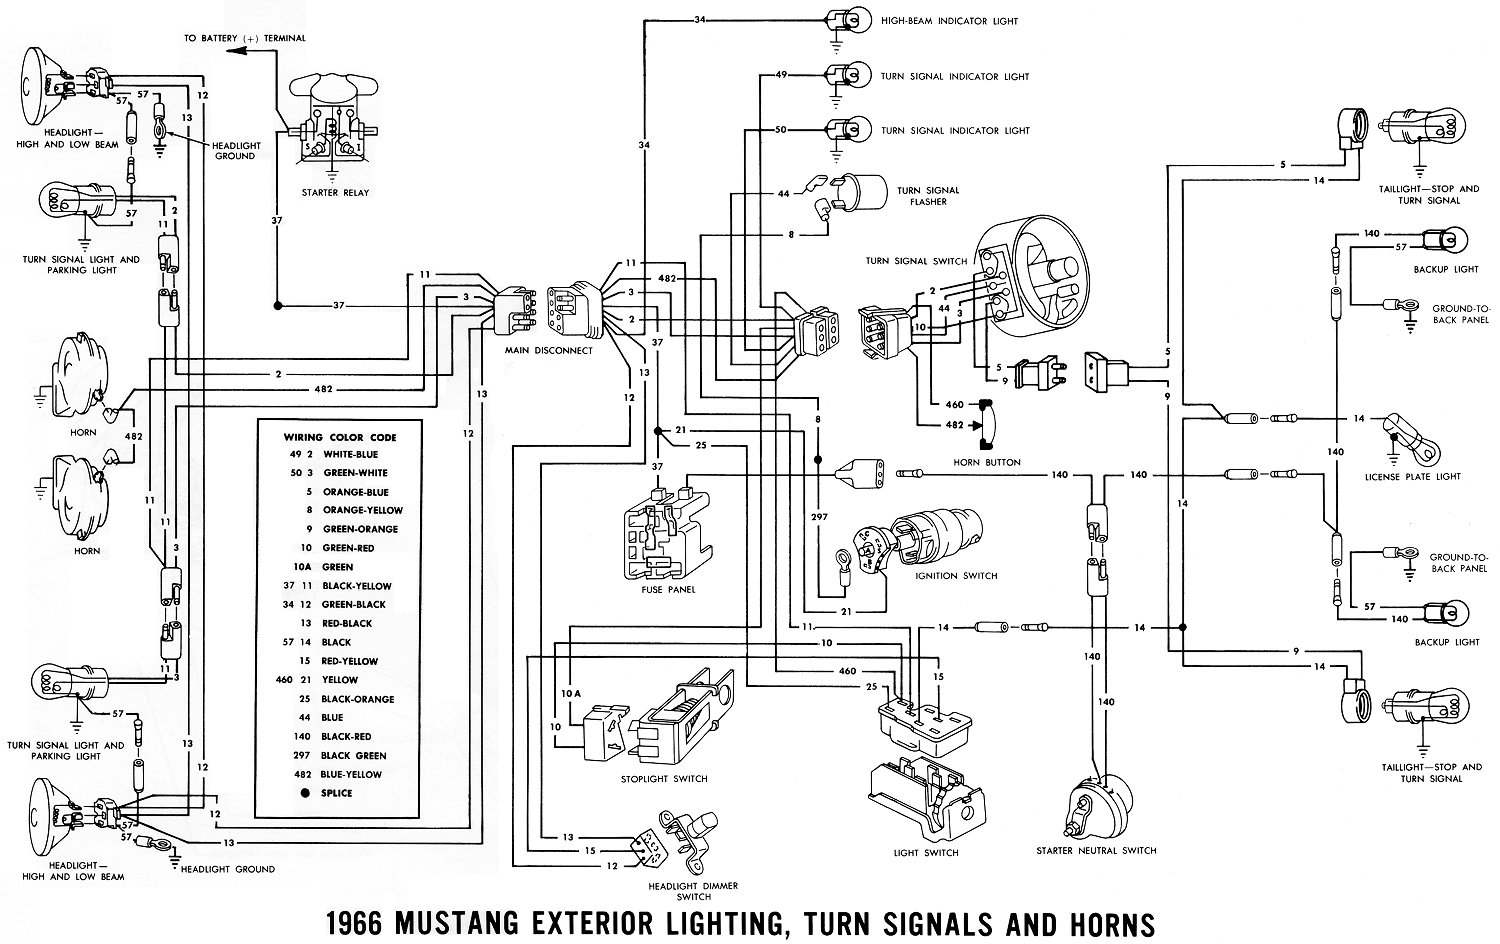 69 ford mustang wiring diagram wiring diagram 1966 Mustang Headlight Wiring Diagram mustang ii wiring diagram cluster circuit diagram templatewrg 8765] 1966 ford ignition switch wiring diagramwiring